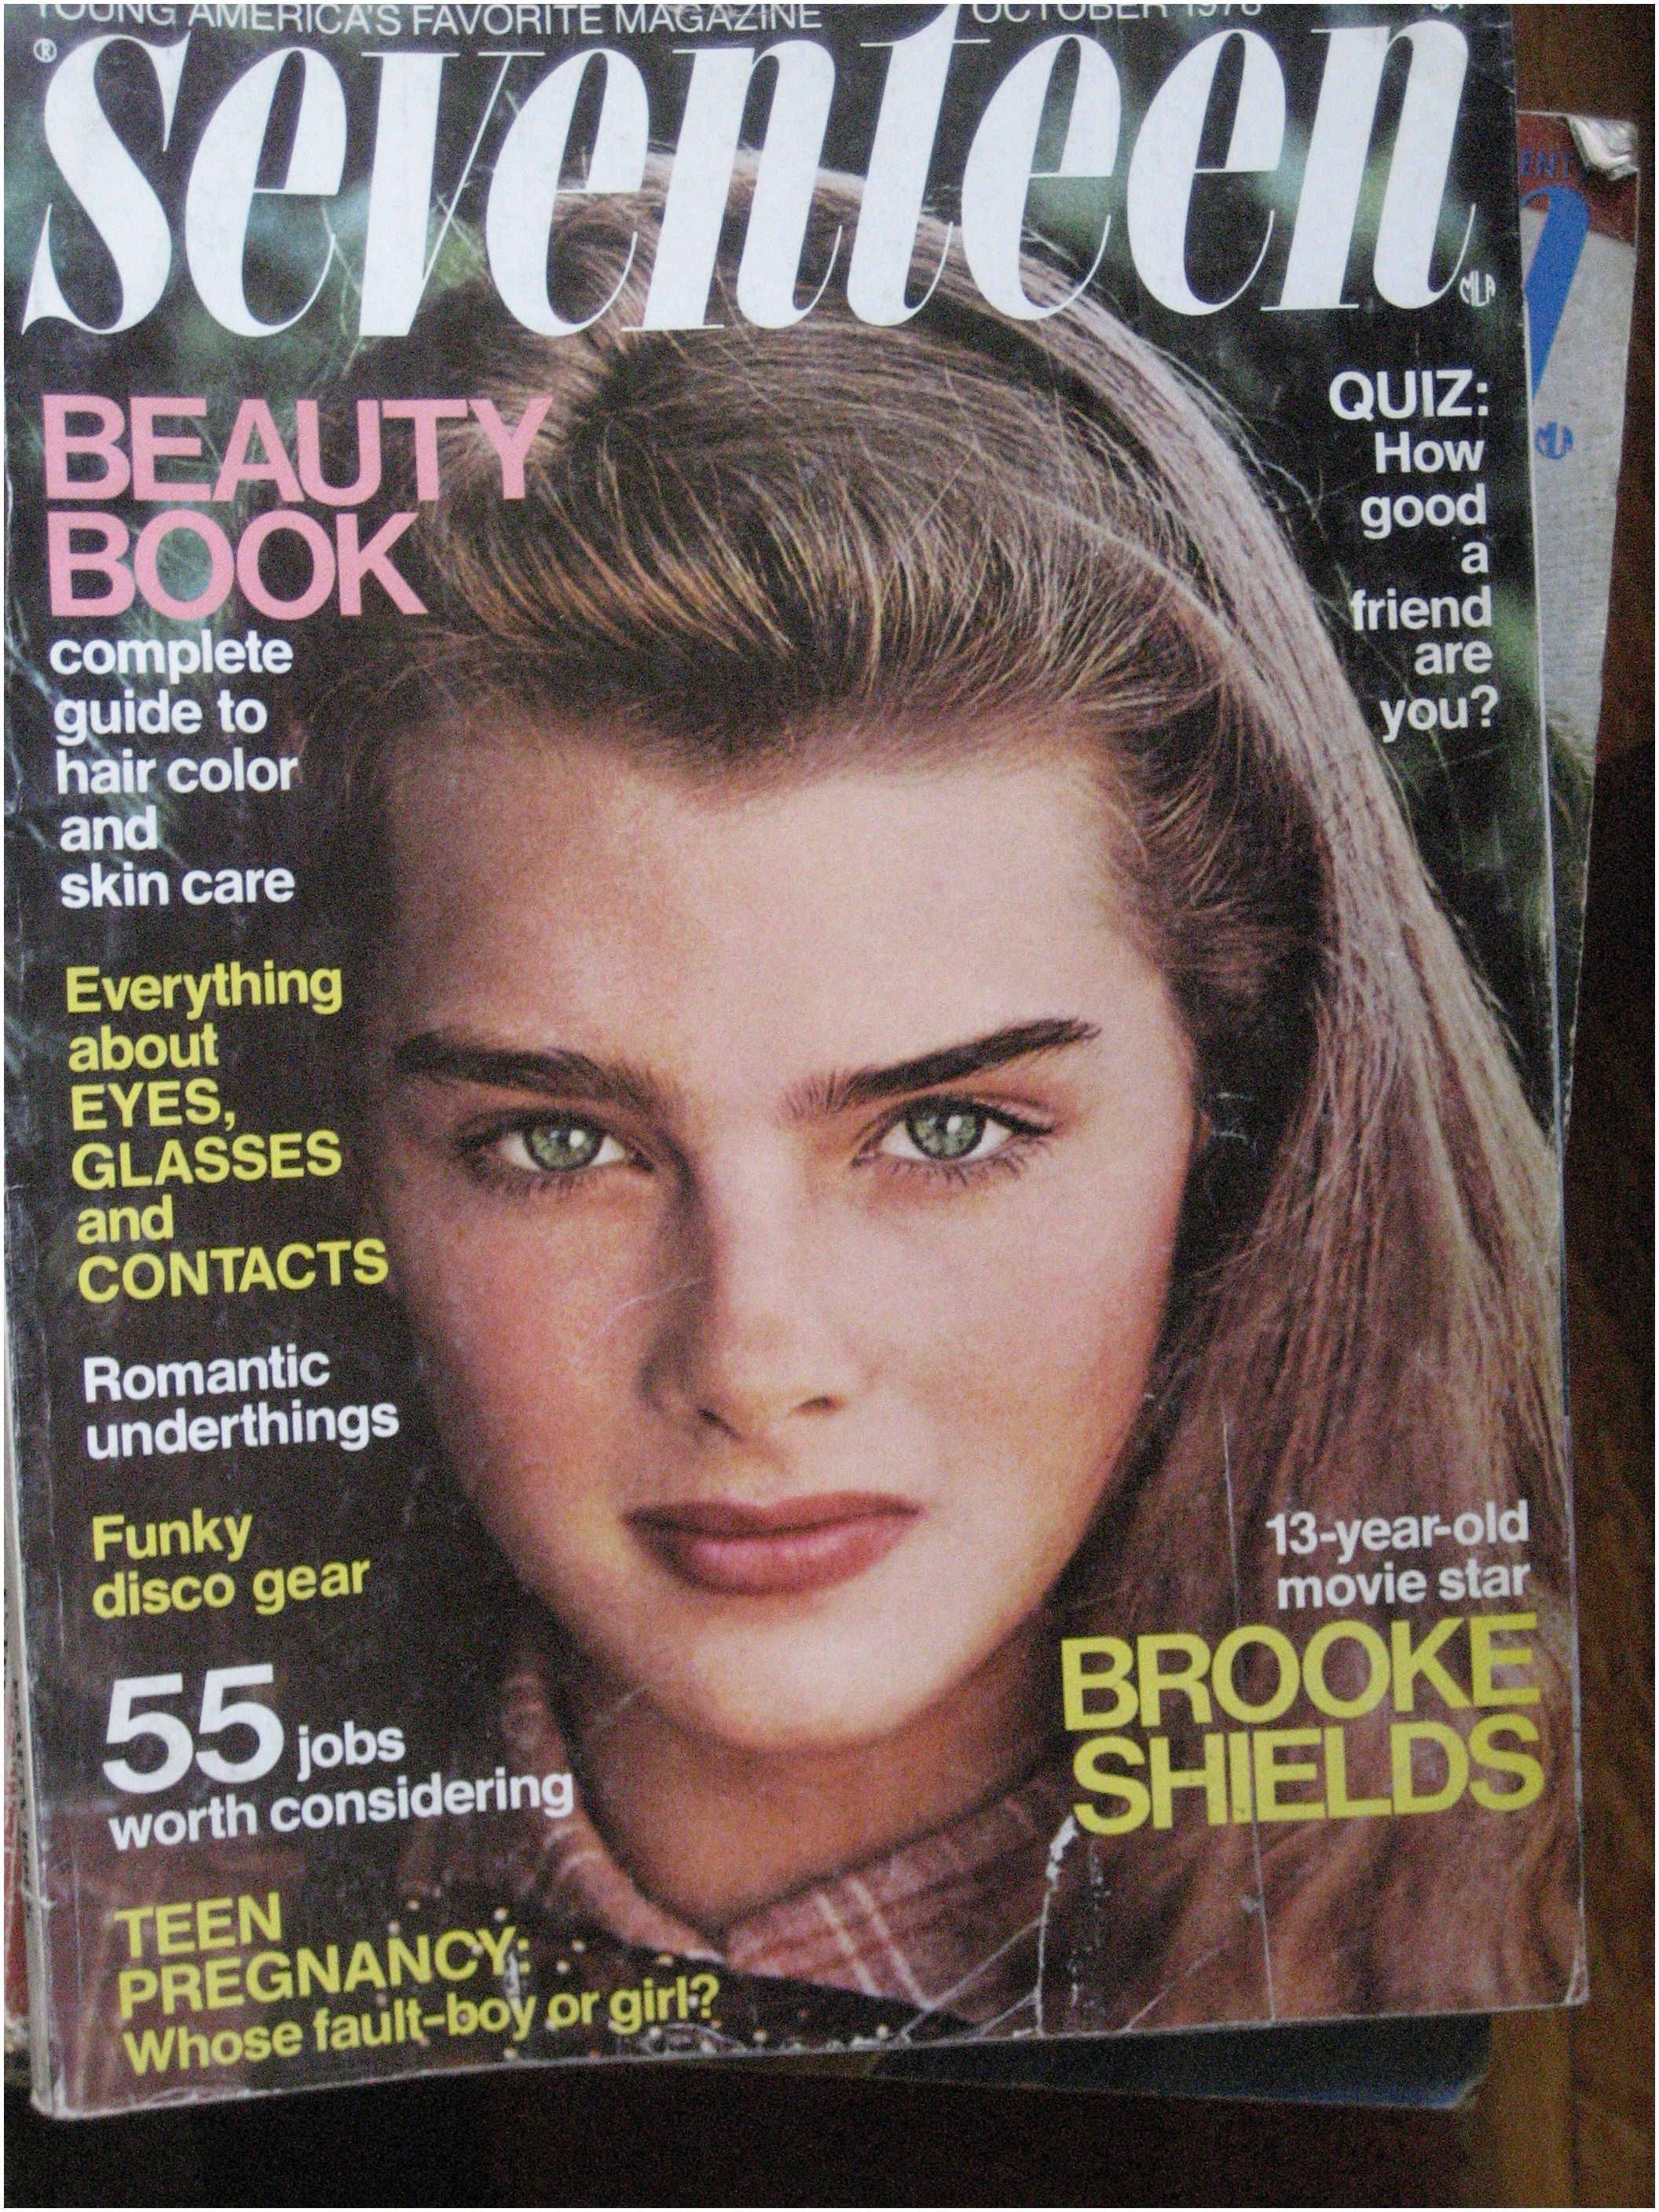 Magazines for 2 Year Old October 1978 issue Of Seventeen Magazine with Brooke Shields On